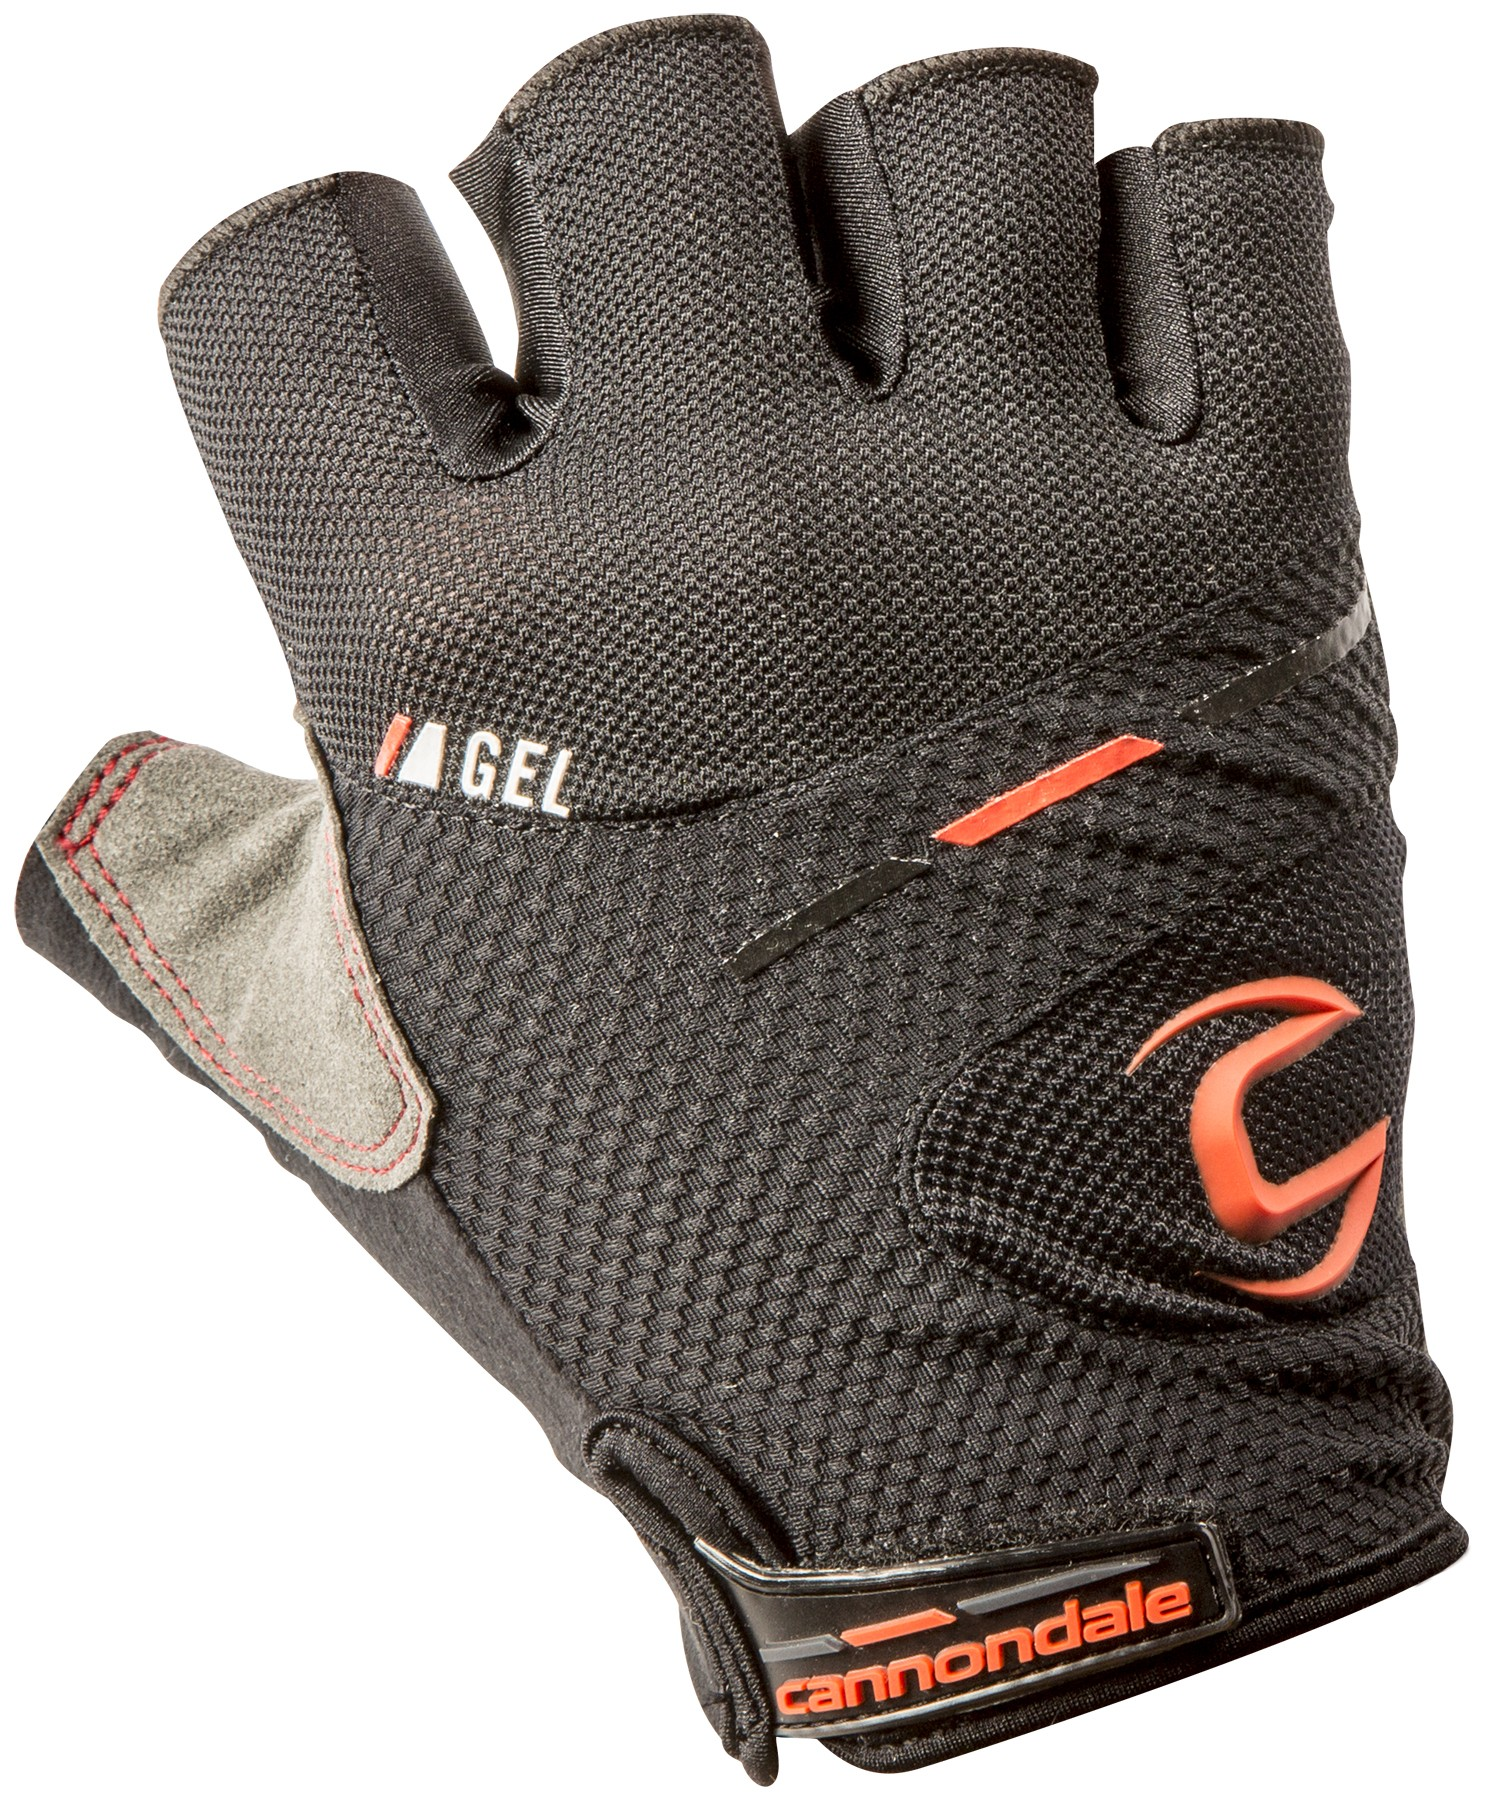 Endurance_Race_gloves_RCR_5G401_RCR